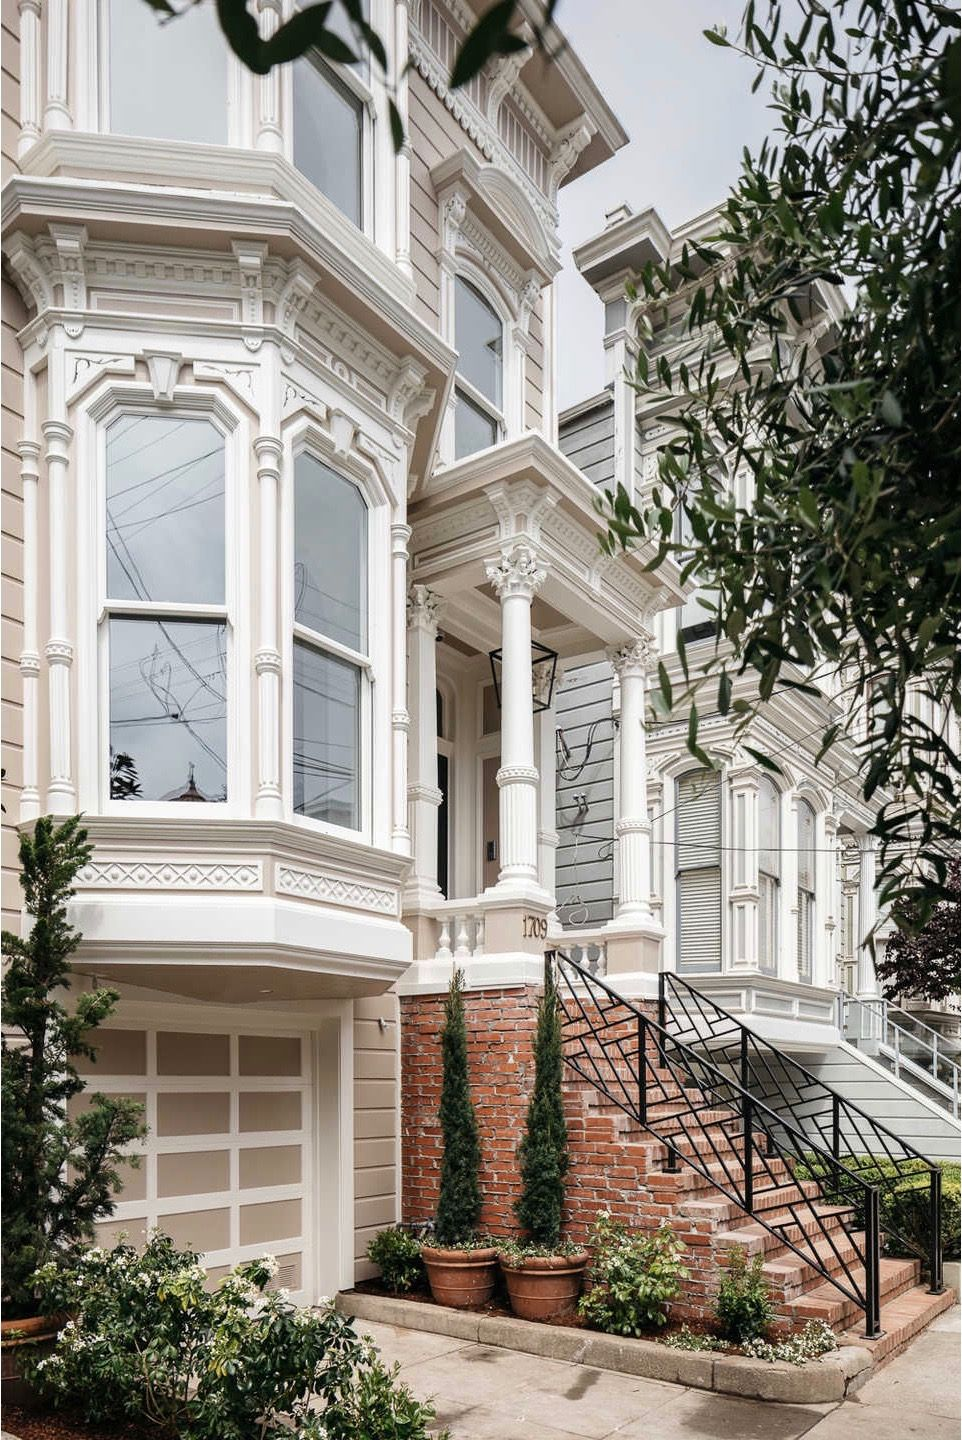 Inspired Interiors The Full House Home In 2020 San Francisco Houses Full House House